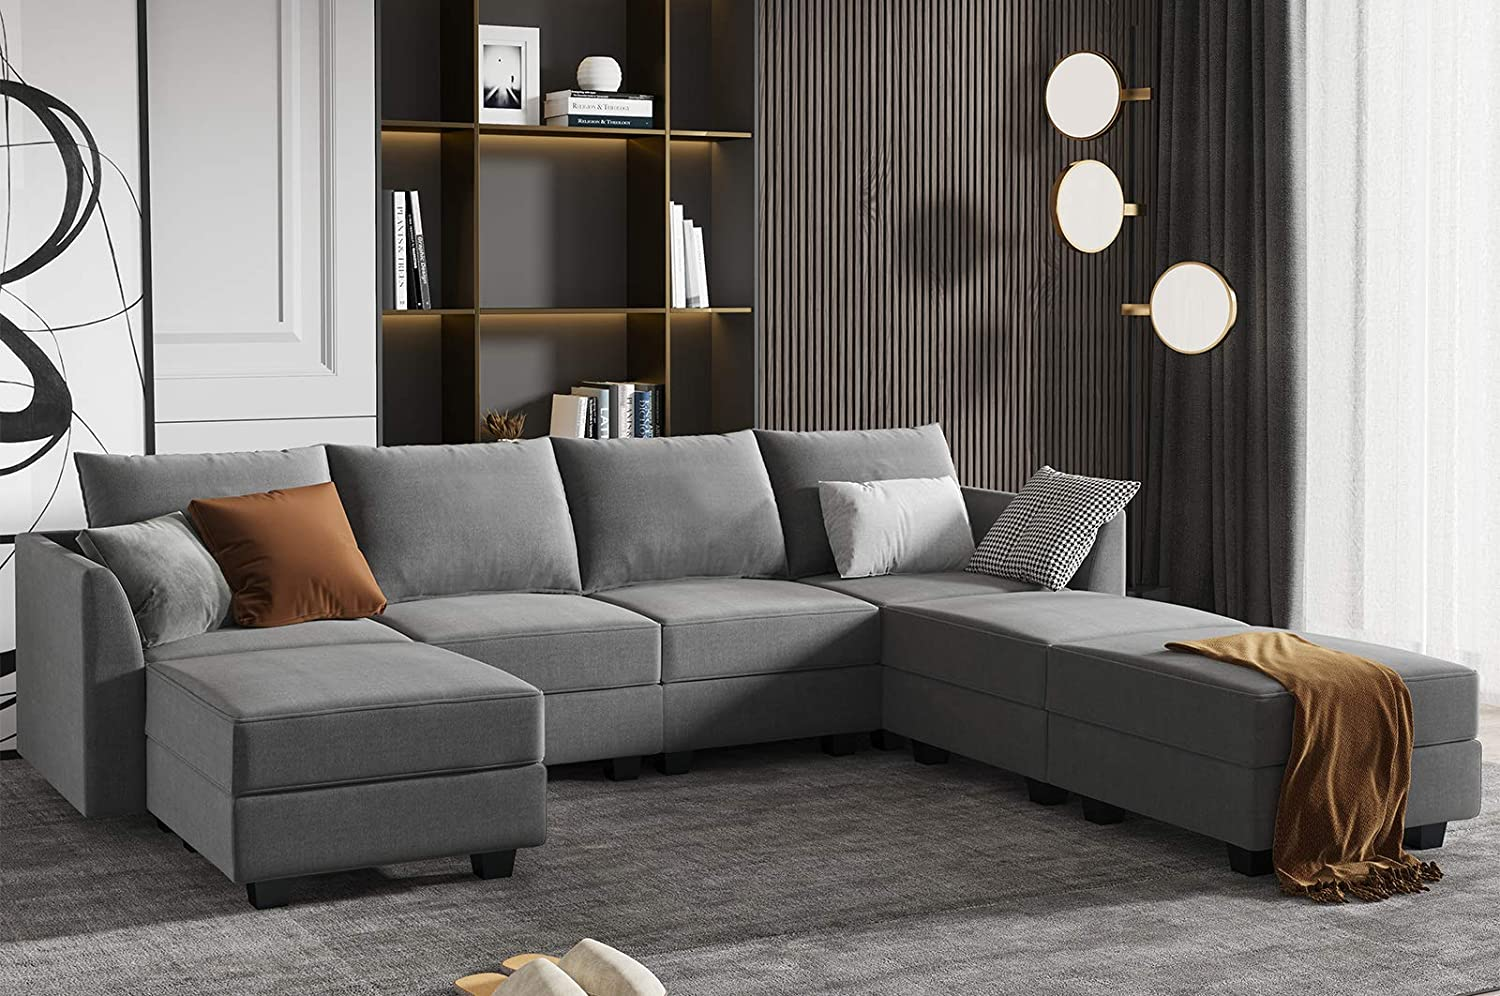 HONBAY Reversible Modular Sectional Sofa Couch Modern U-Shape Sofa with Chaise,Grey